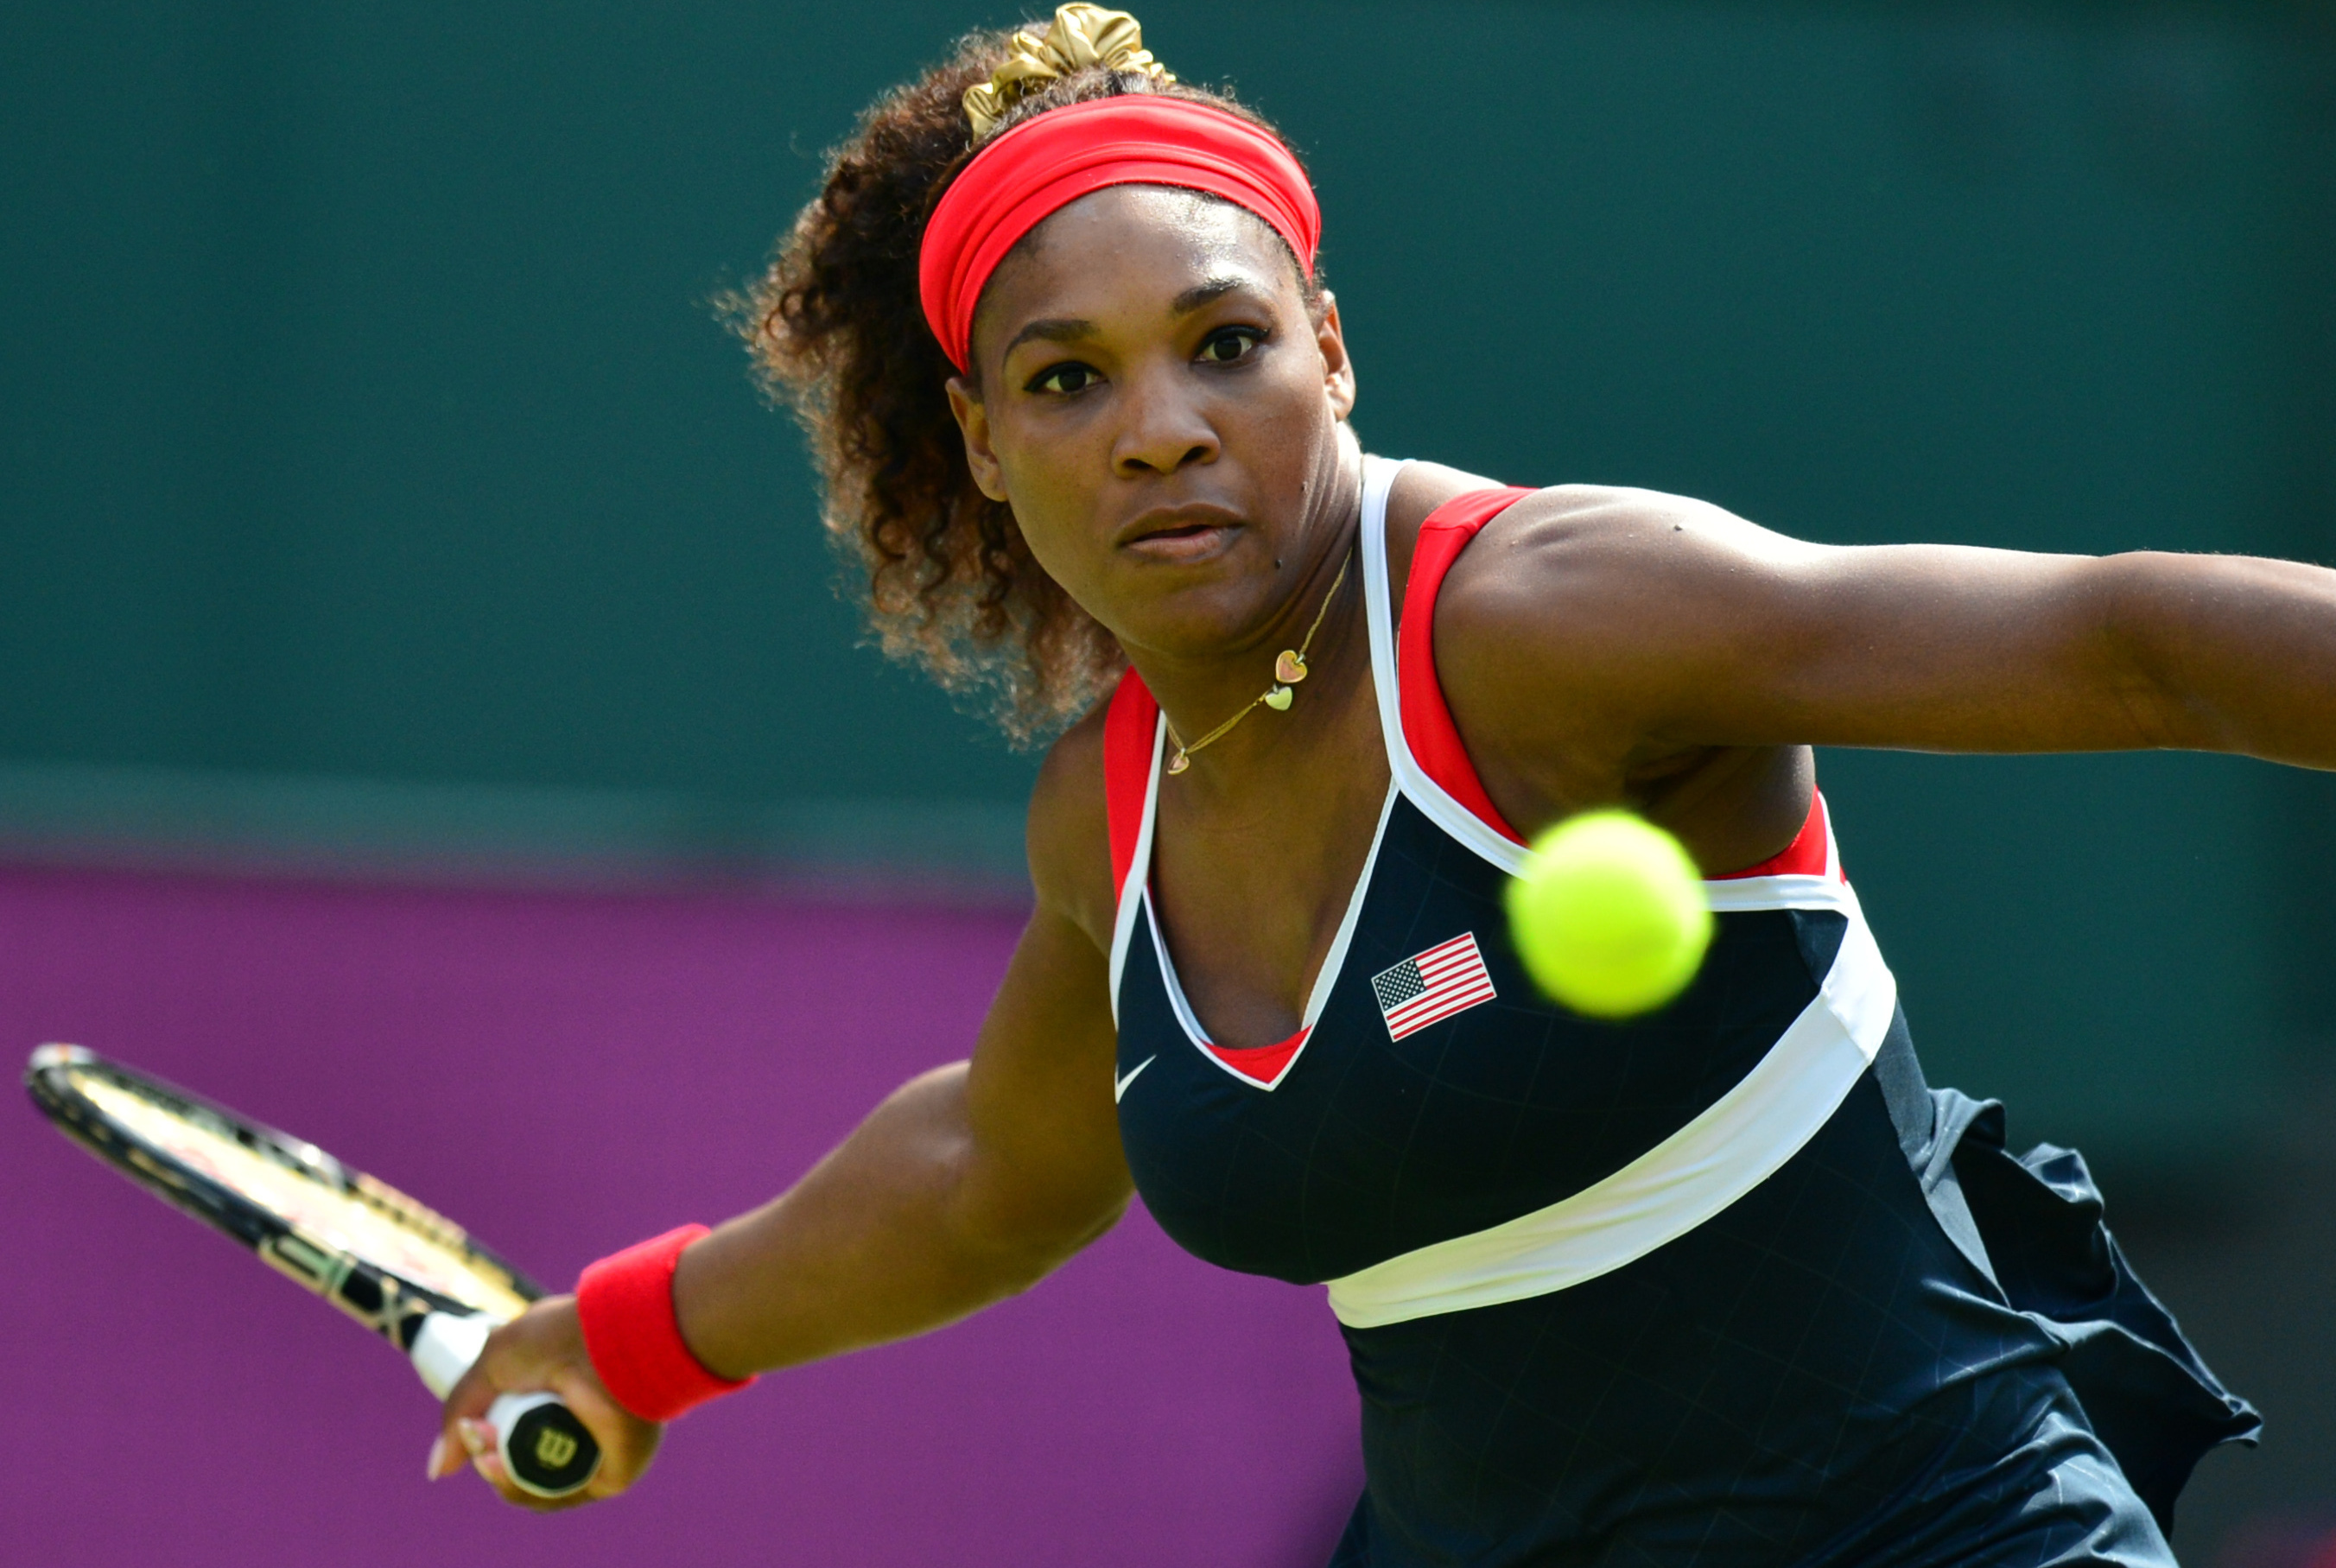 Serena Williams Wins Olympic Gold Beating Sharapova 6 1 6 0